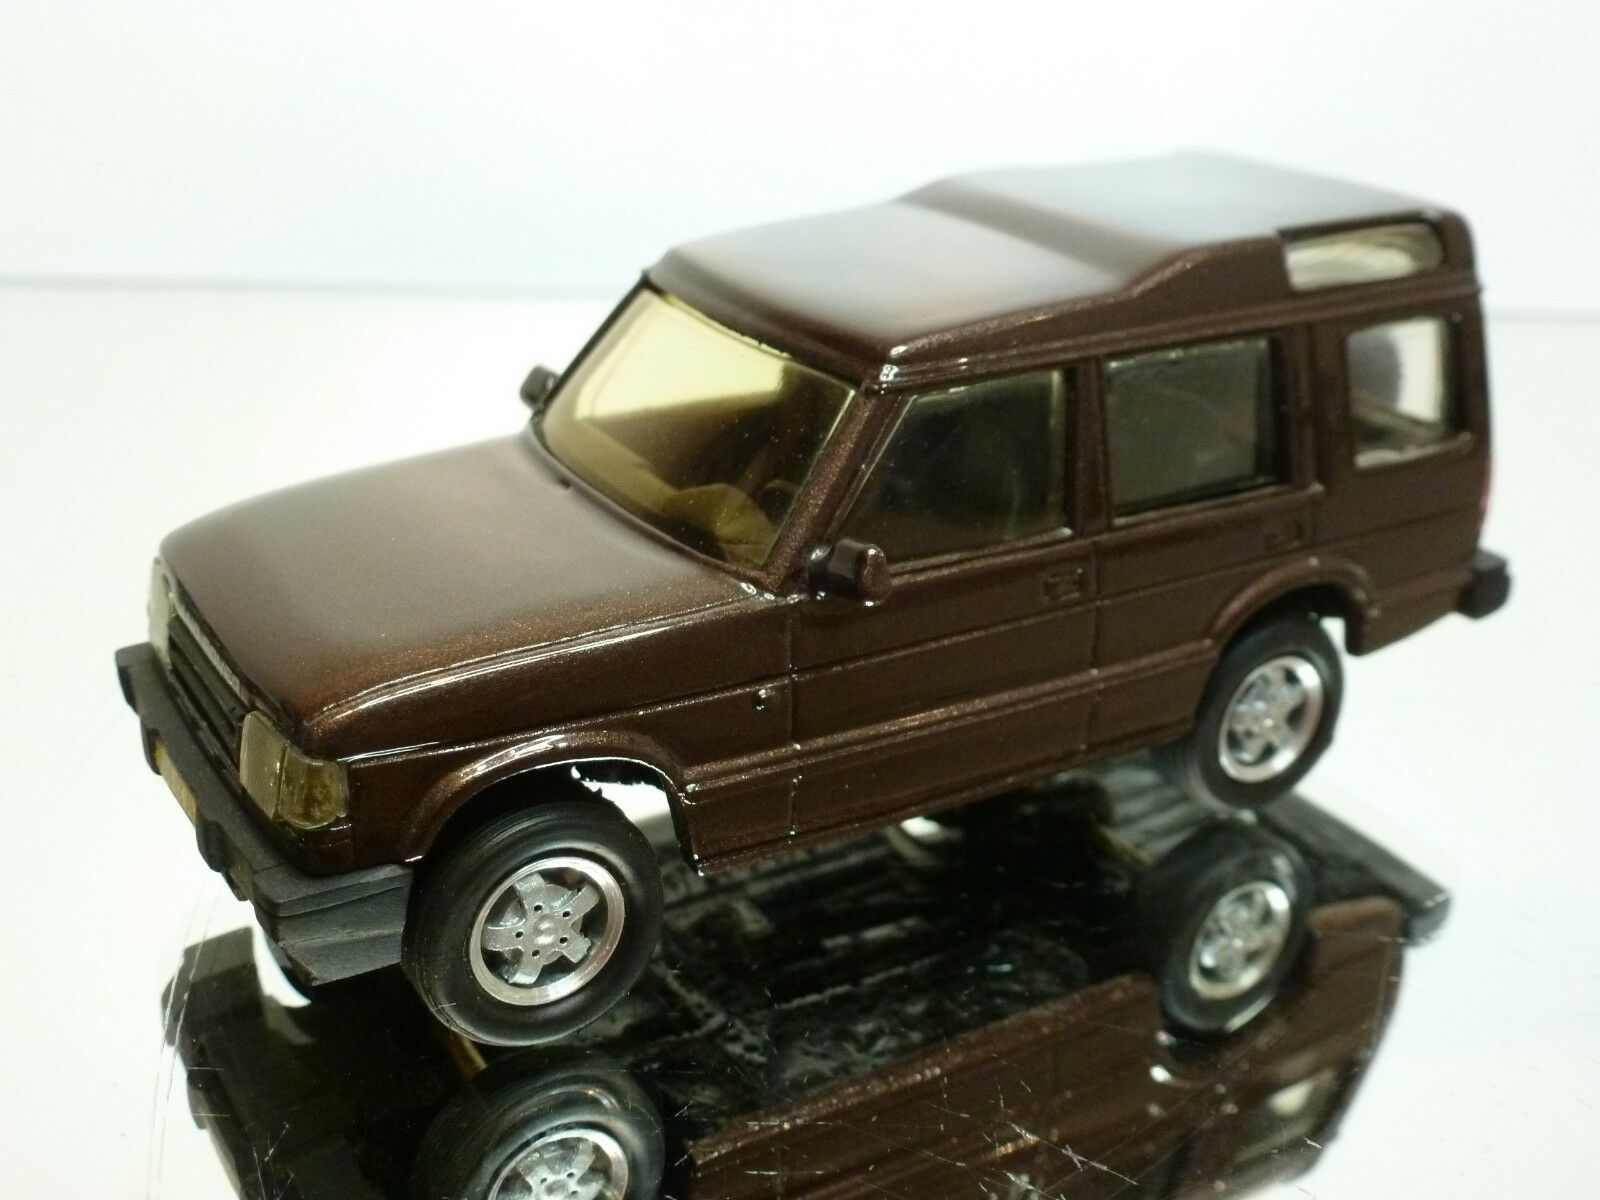 PARADCAR LAND ROVER DISCOVERY - BROWN METALLIC 1 43 - EXCELLENT CONDITION - 4